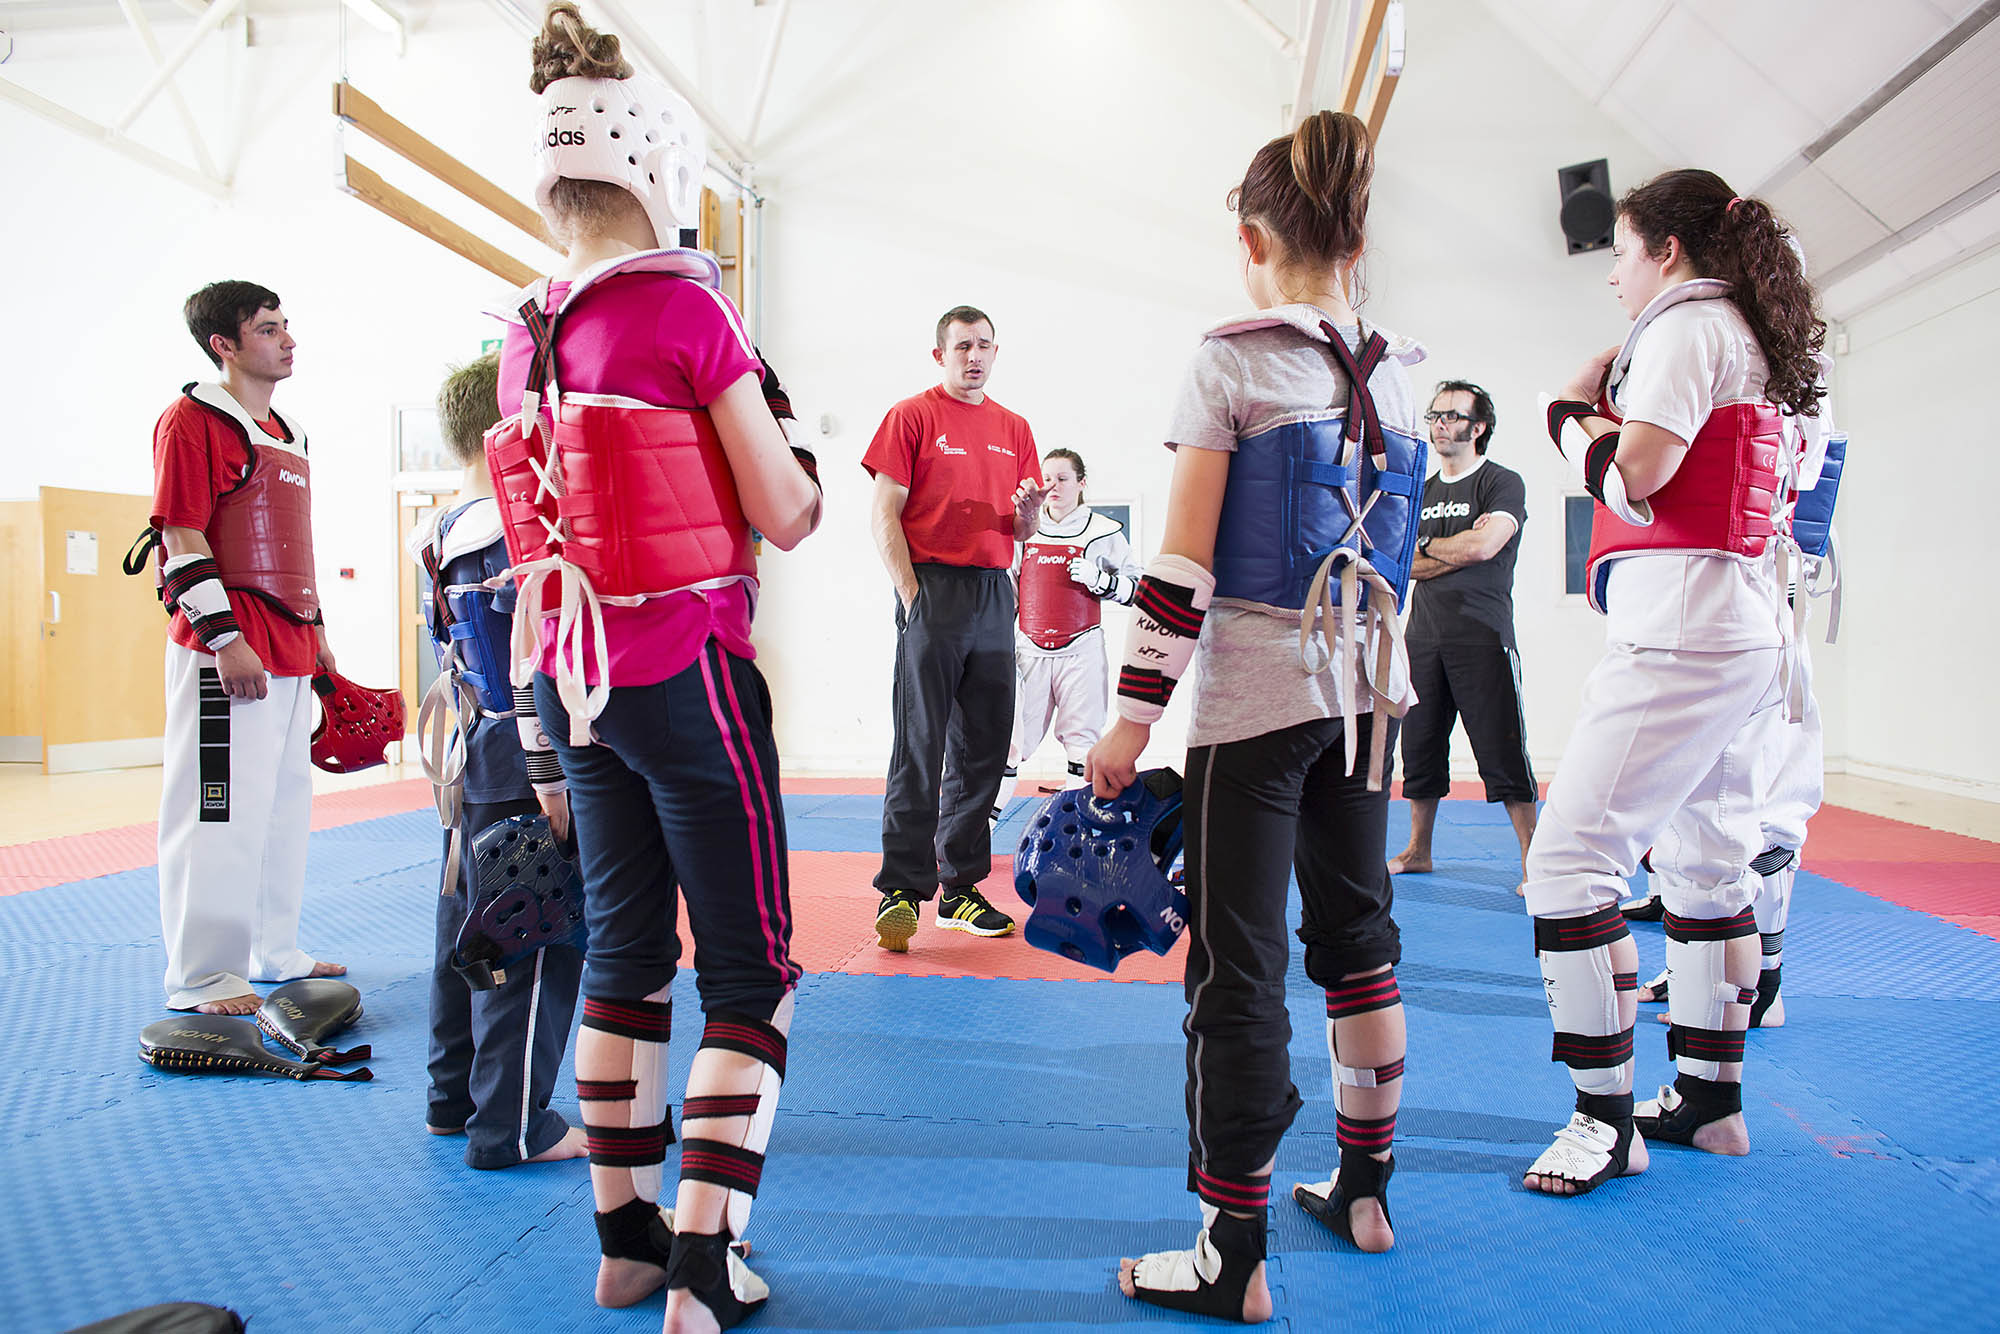 Taekwondo coach talking to group of participants